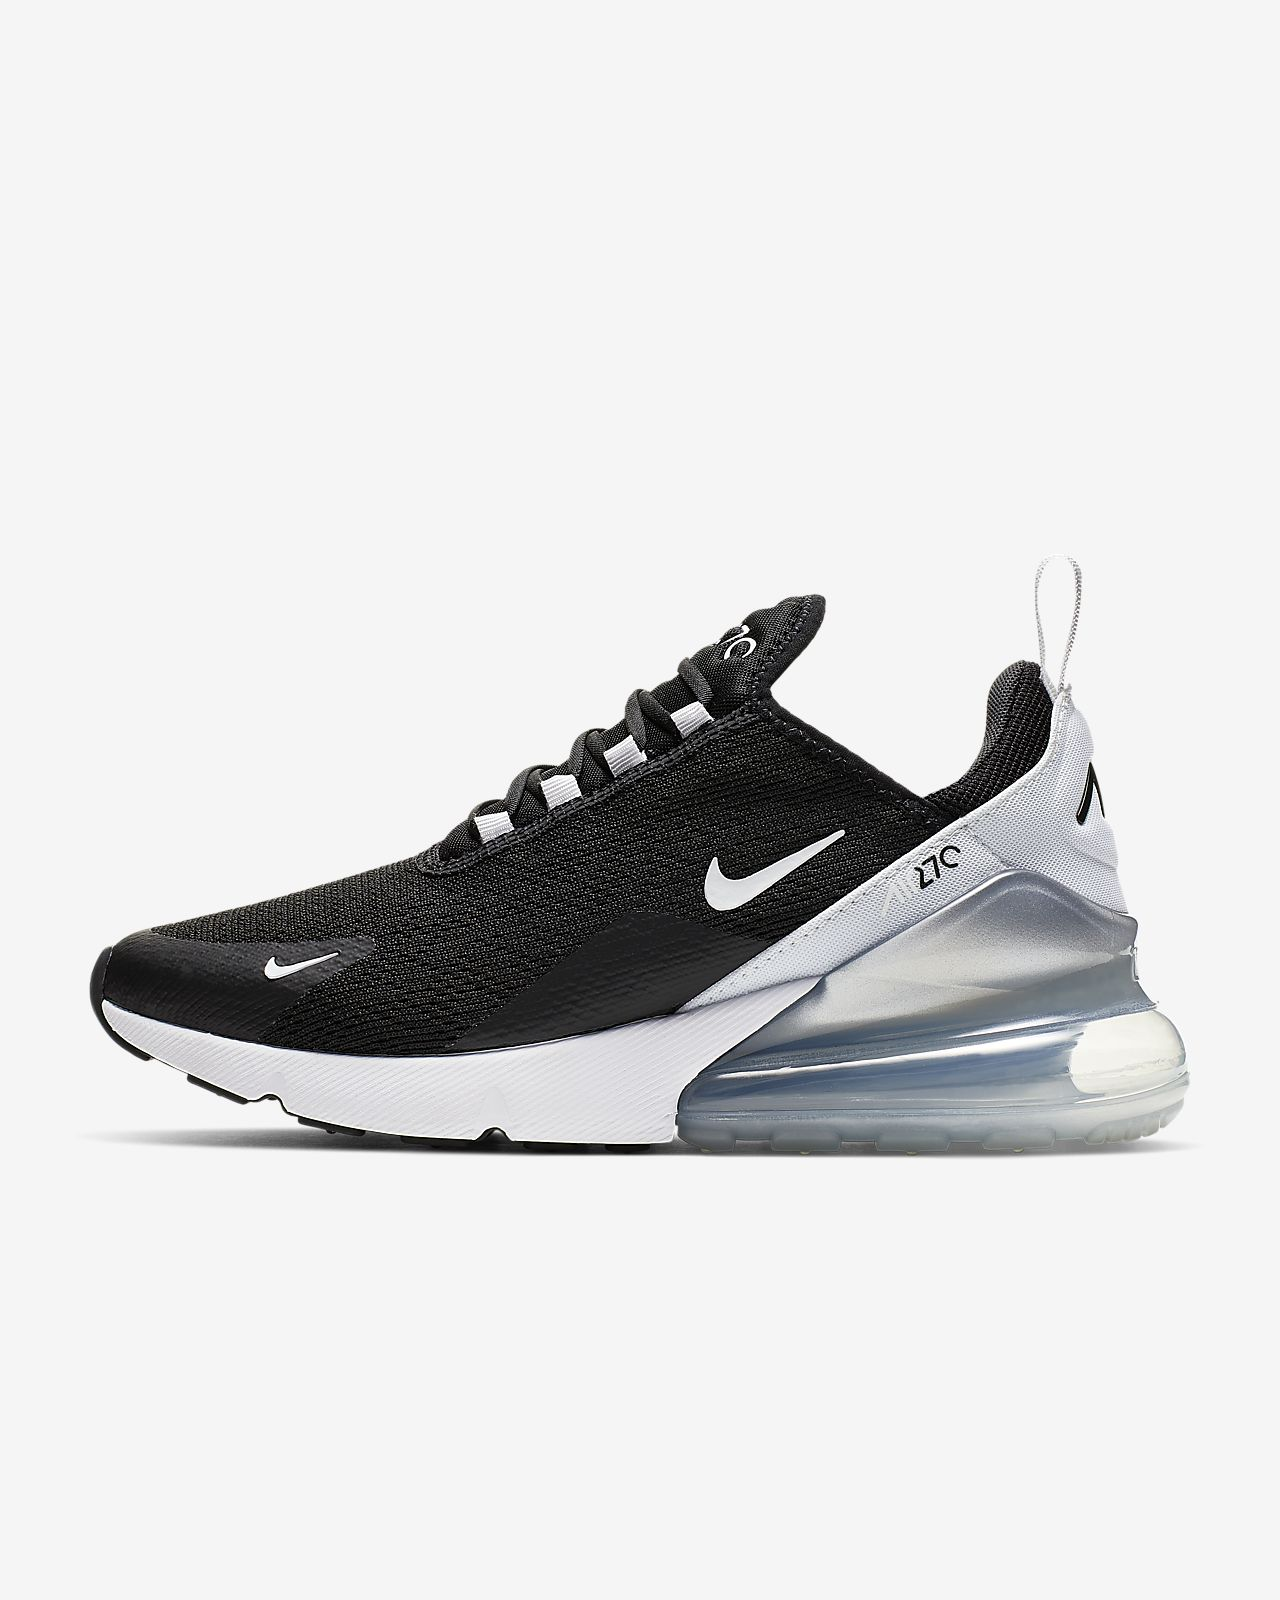 64d03f453c731 ... Nike Air Max 270 Women's Shoe. Low Resolution undefined